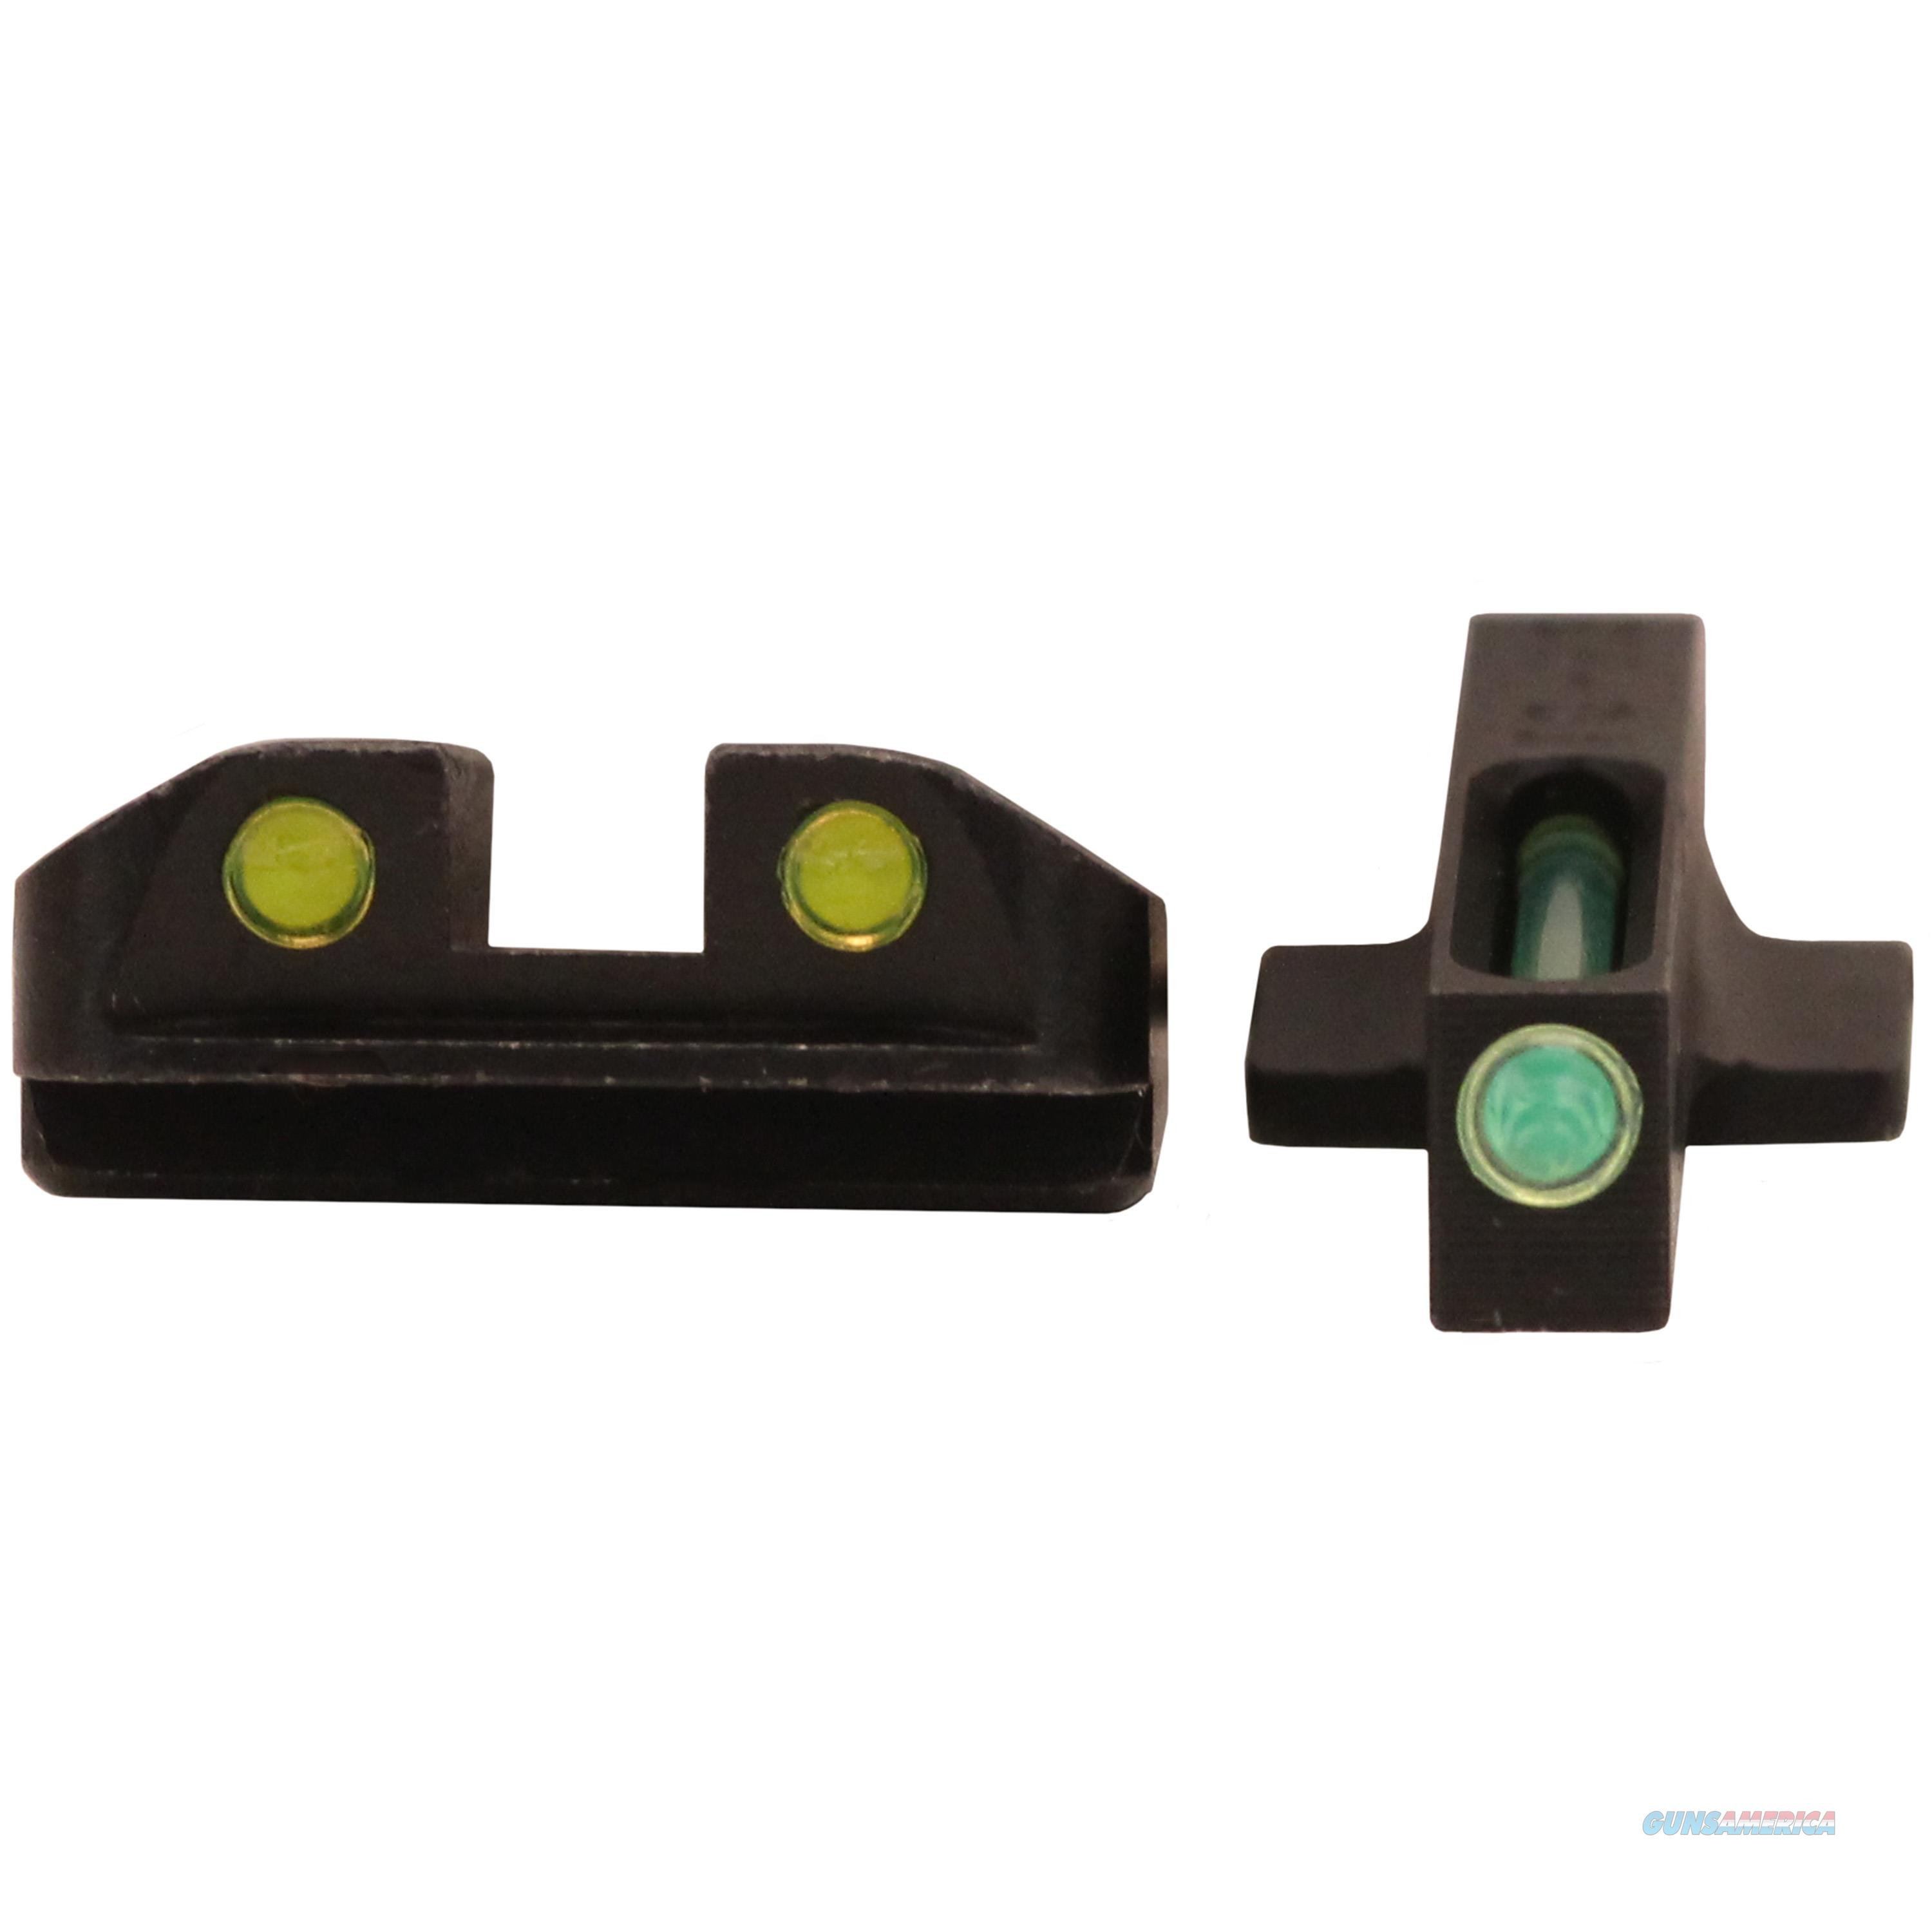 Truglo Tfo Brite-Site Series TG131AT1Y  Non-Guns > Iron/Metal/Peep Sights